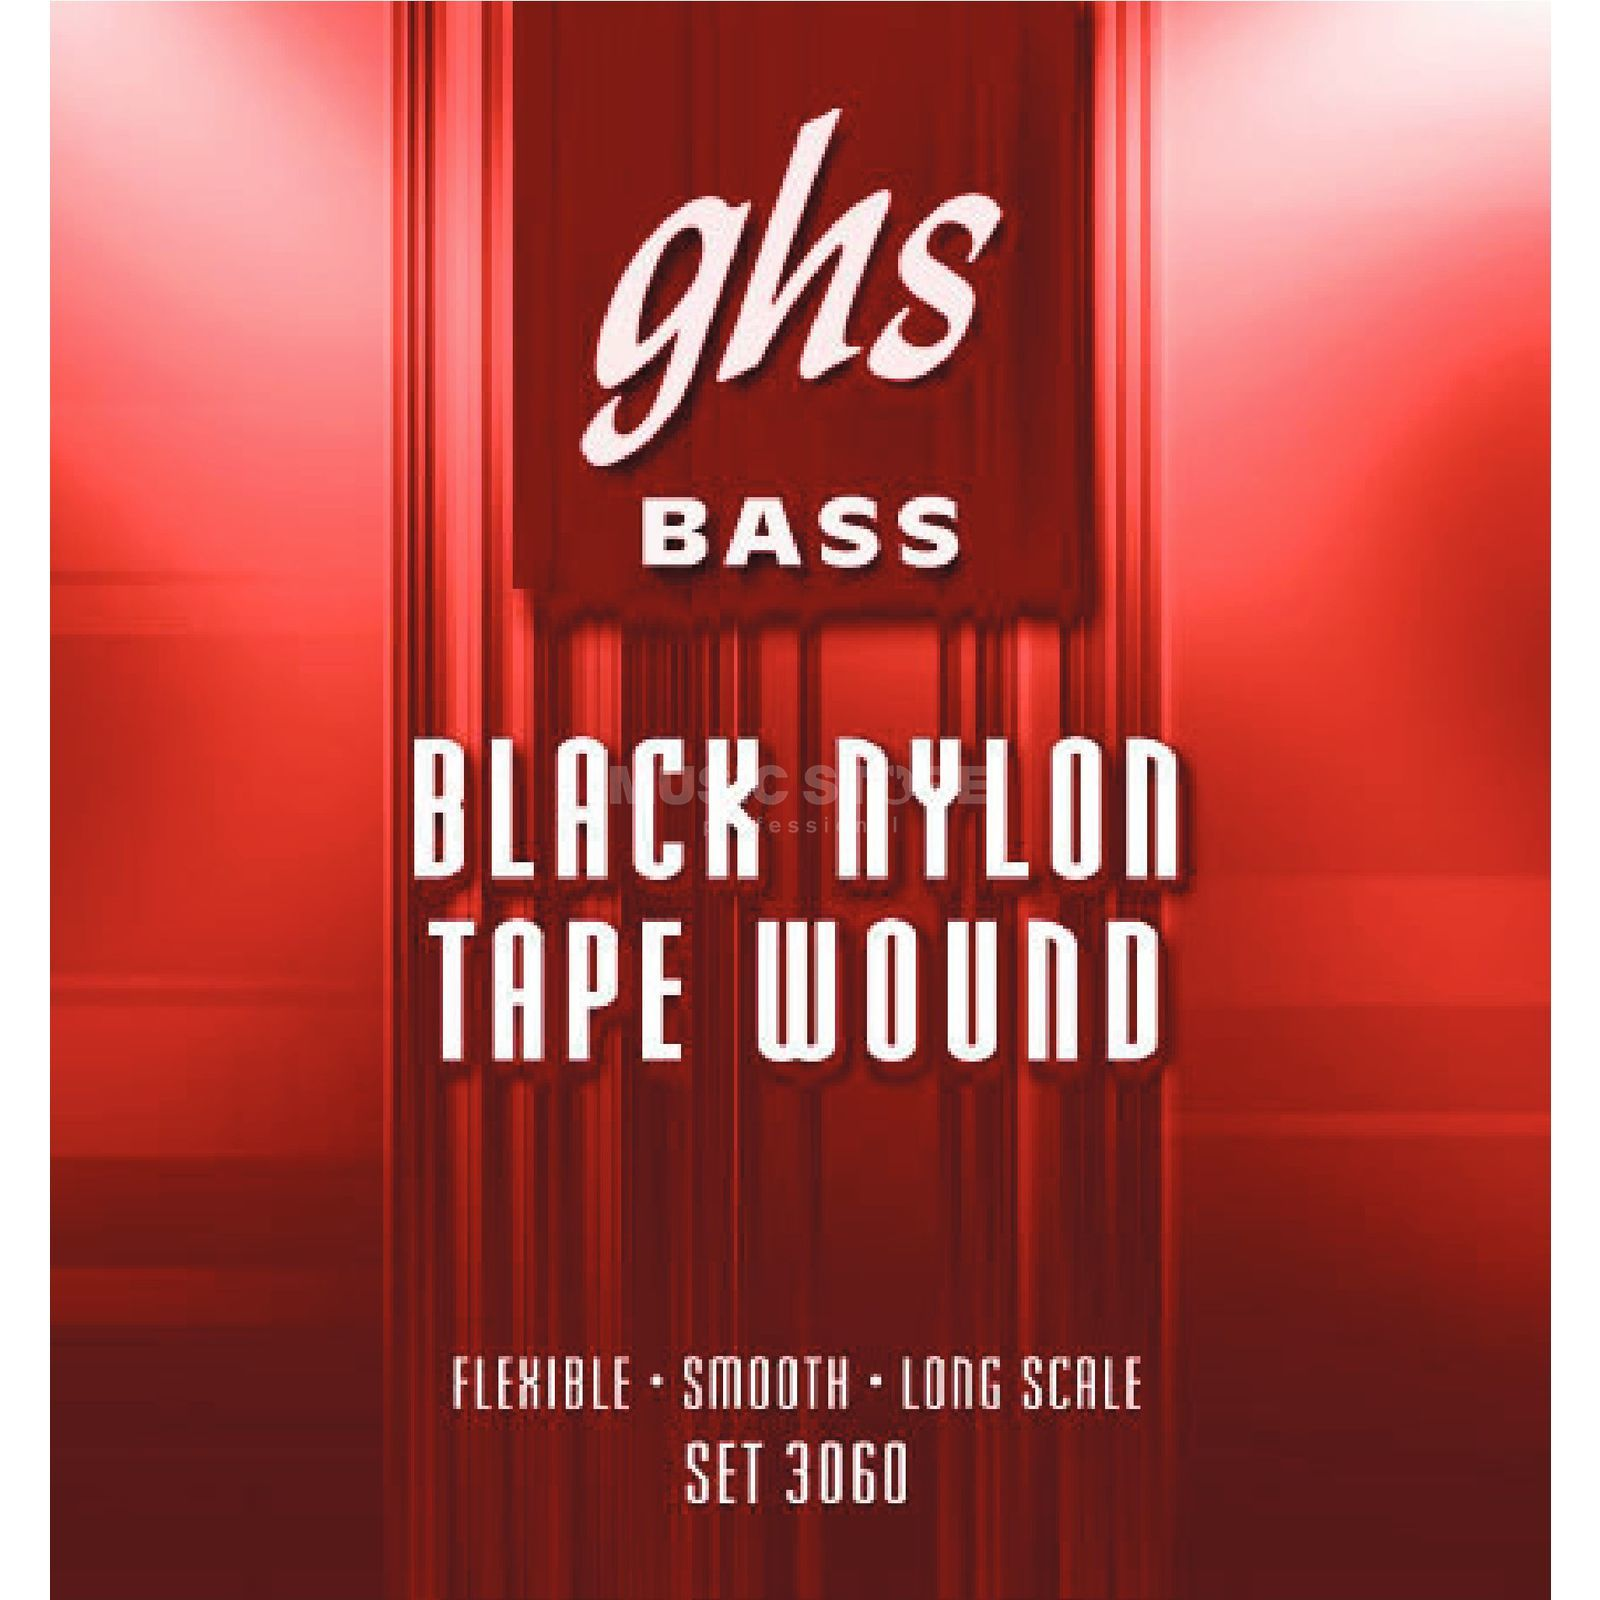 GHS 5 String Bass Tapewound Black Nylon 50-70-90-105-125 Изображение товара